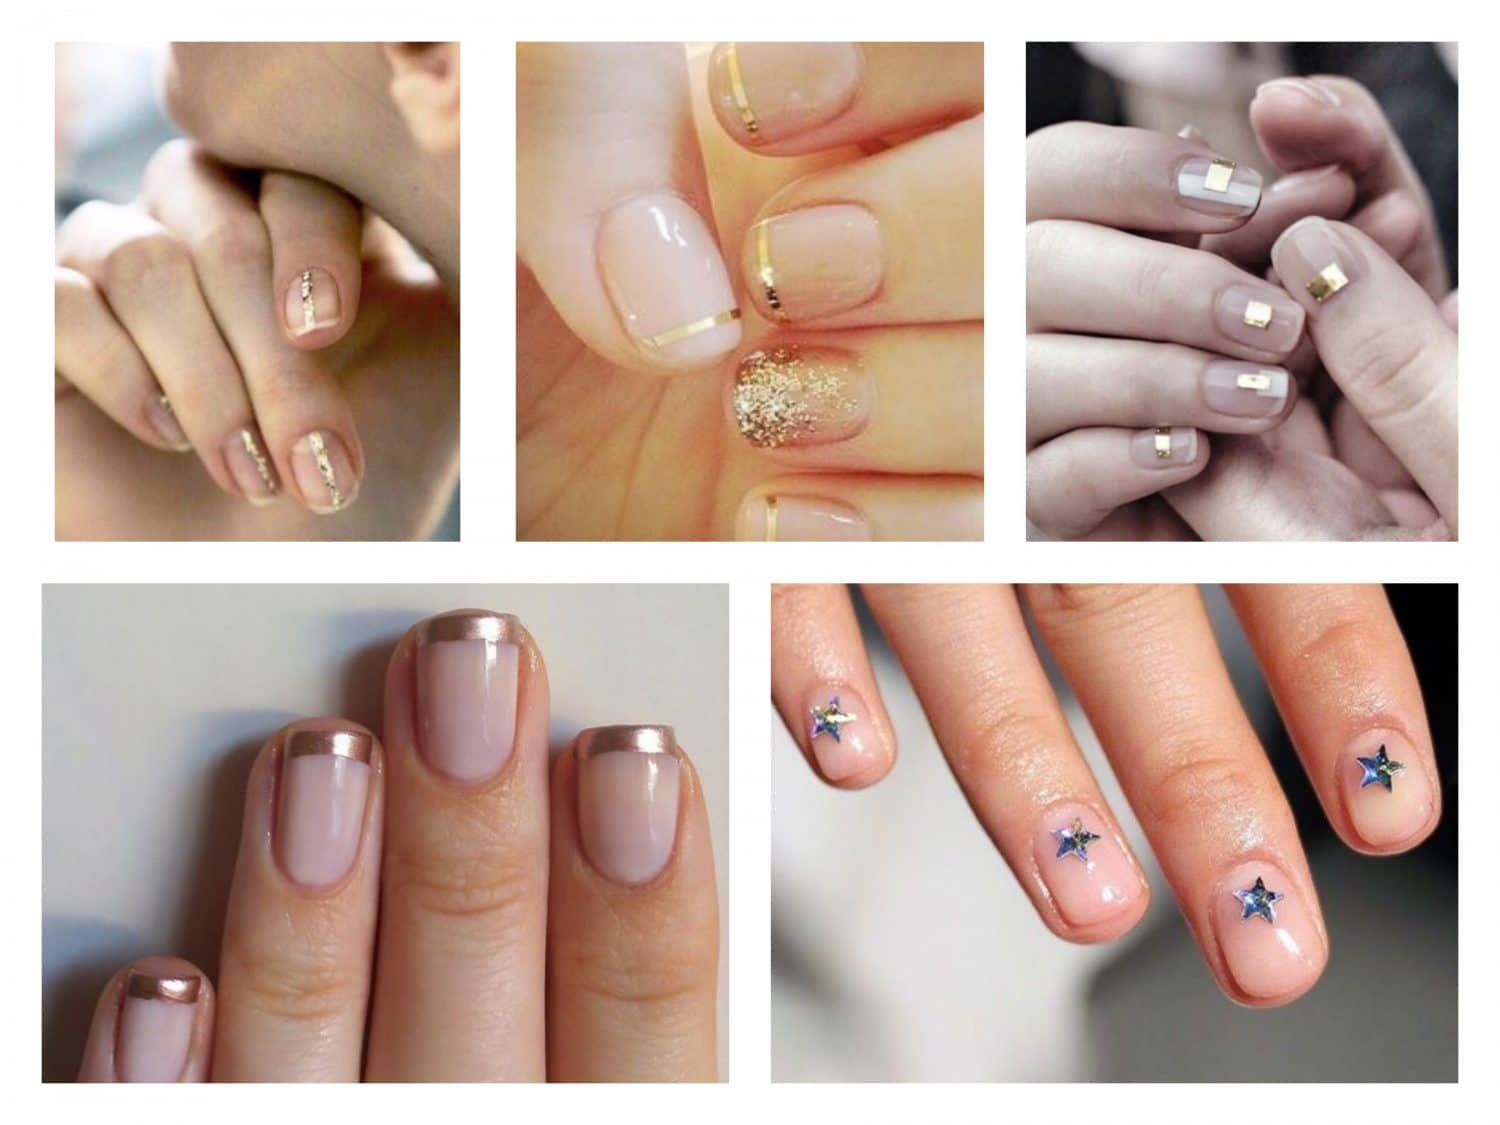 If you want to have sweet or awesome nails, start to play nails make up games. You can choose hand finger nail or foot finger nail to make up. For example, you can do summer foot decoration or finger nail decoration. You can make up foot fabulously or pretty beauty and dreamy way. You can also make over in both nails and hands.